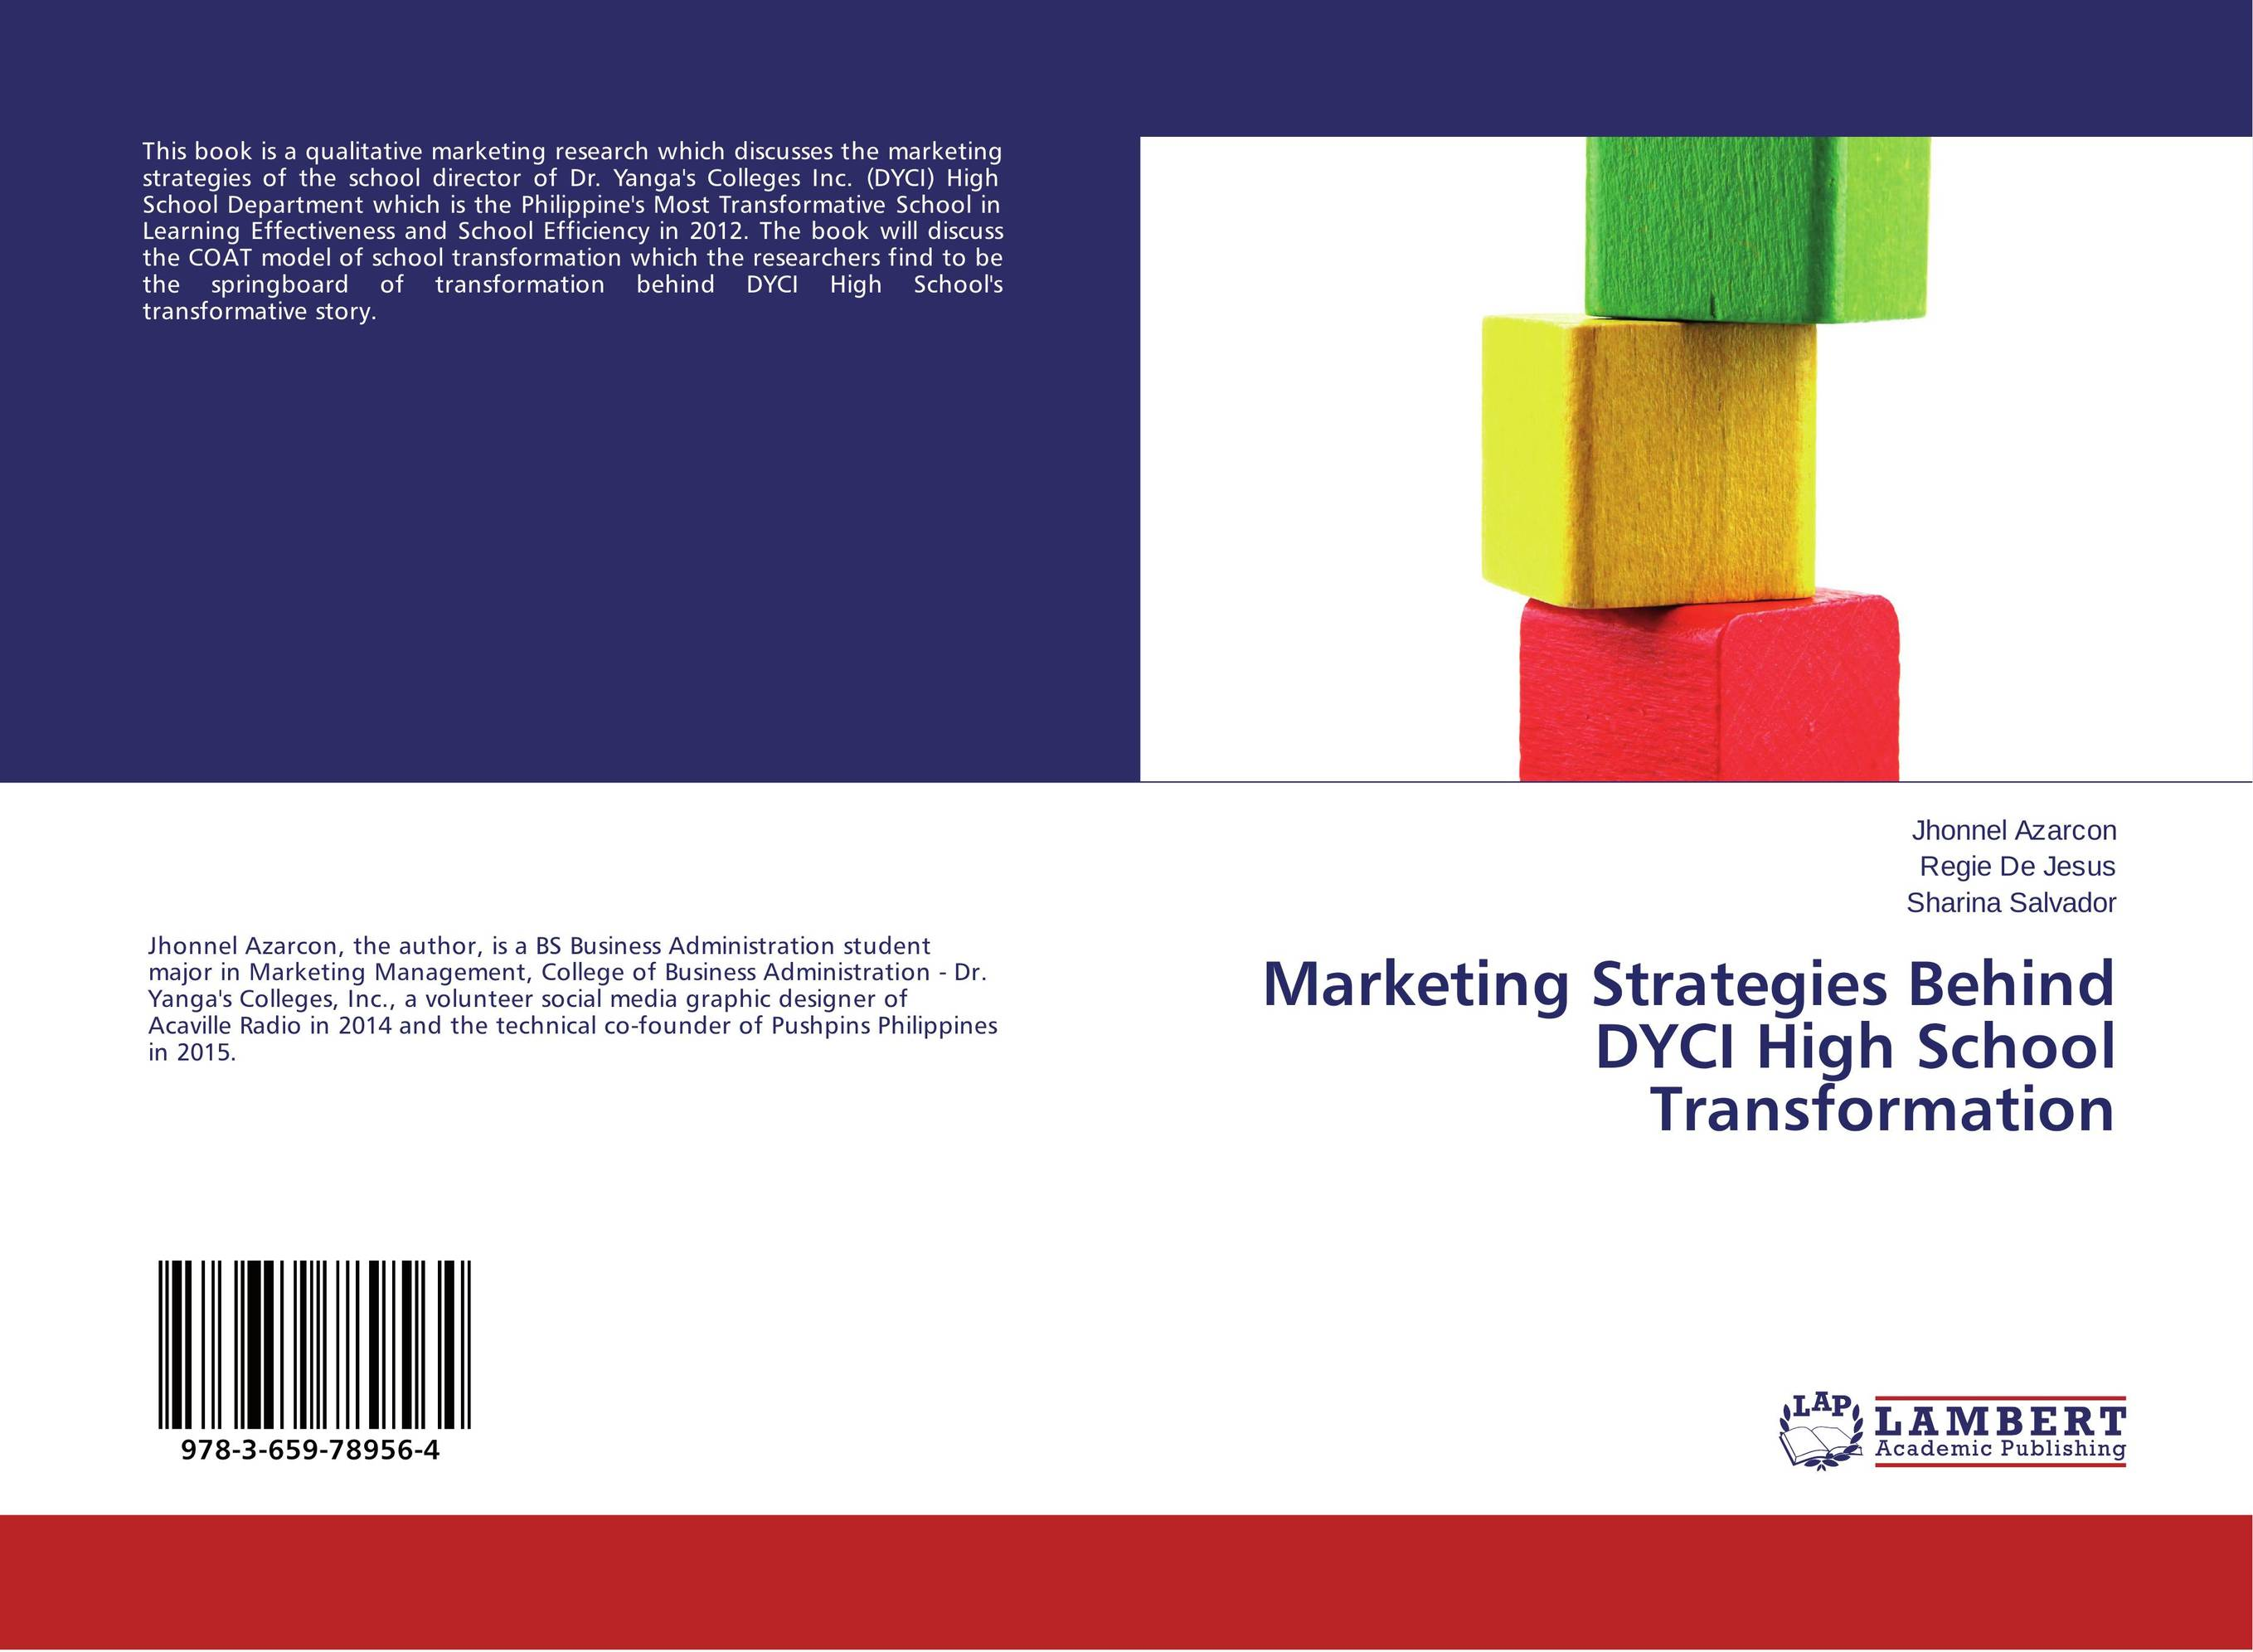 Marketing Strategies Behind DYCI High School Transformation springboard